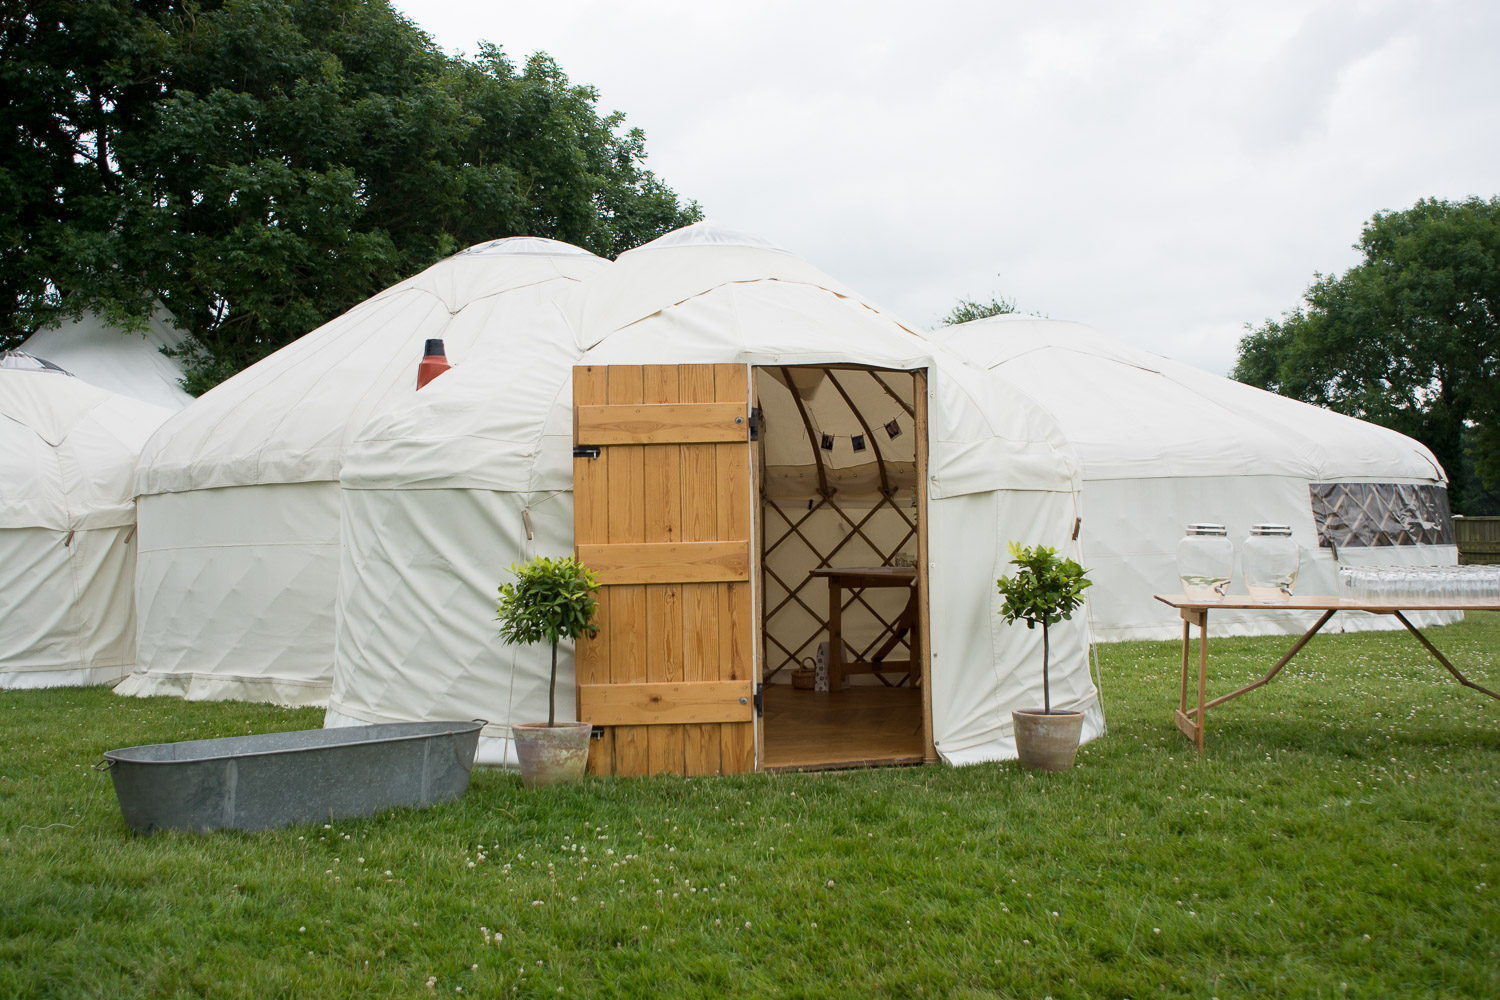 outside view of the wedding yurts at wedding yurts wedding in leicestershire